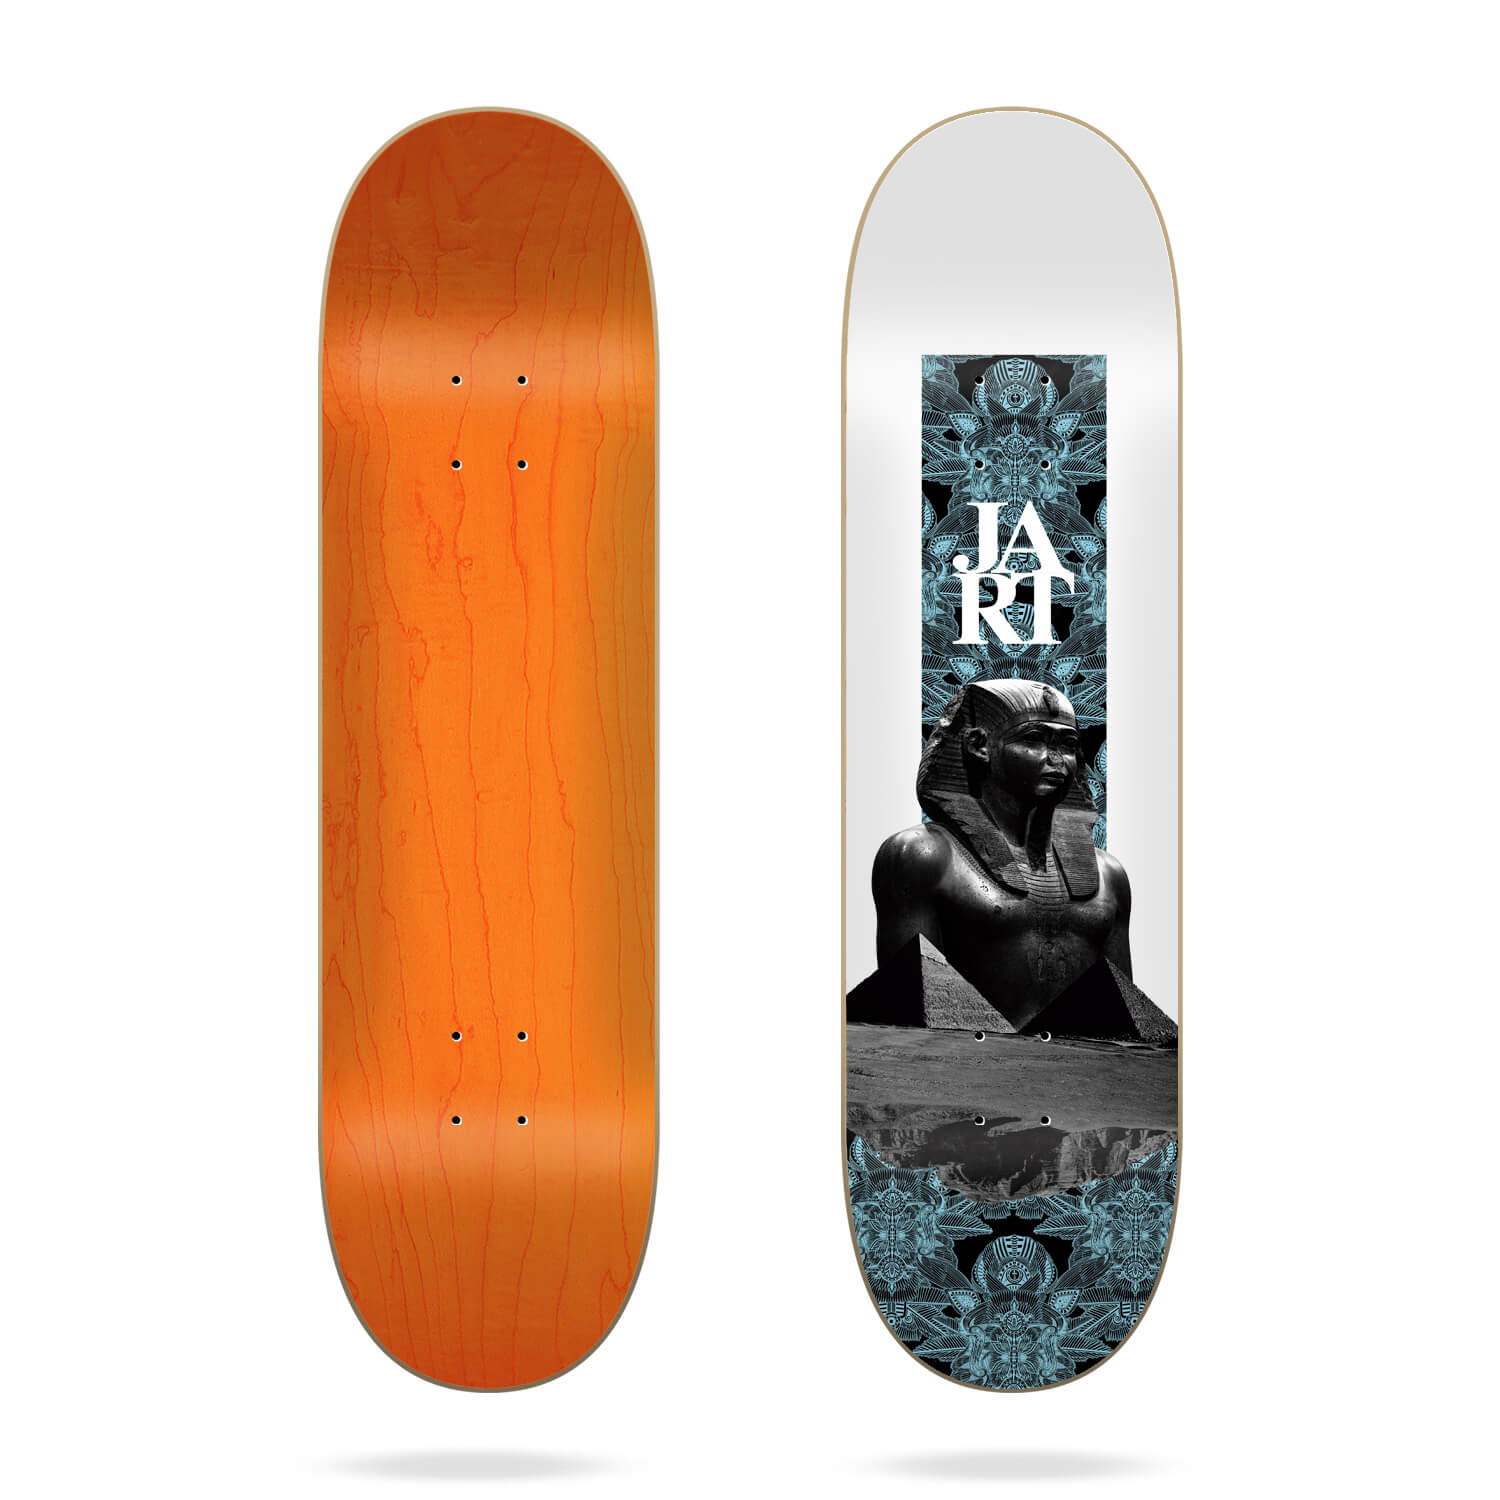 "Jart Abstraction 7.87"" Deck"